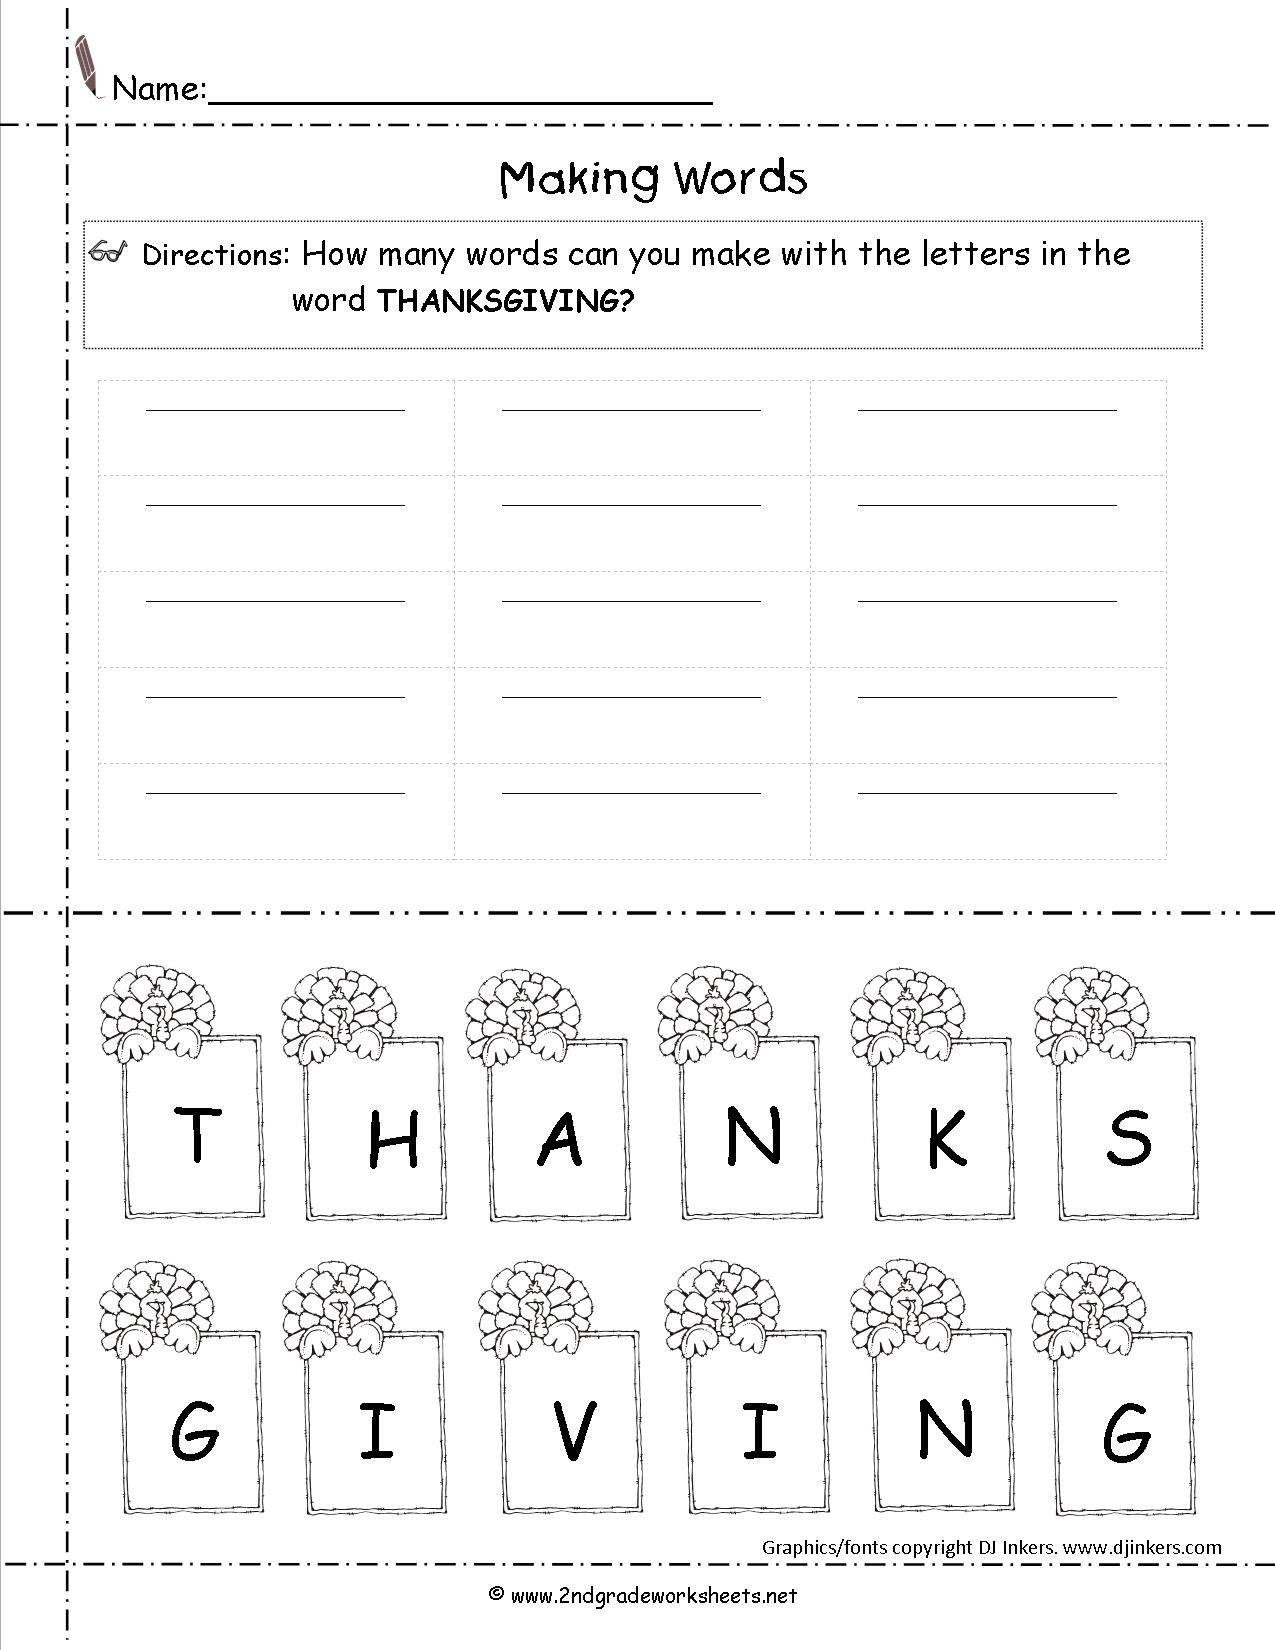 Thanksgiving Math Worksheets 5th Grade Thanksgiving Printouts and Worksheets Third Grade